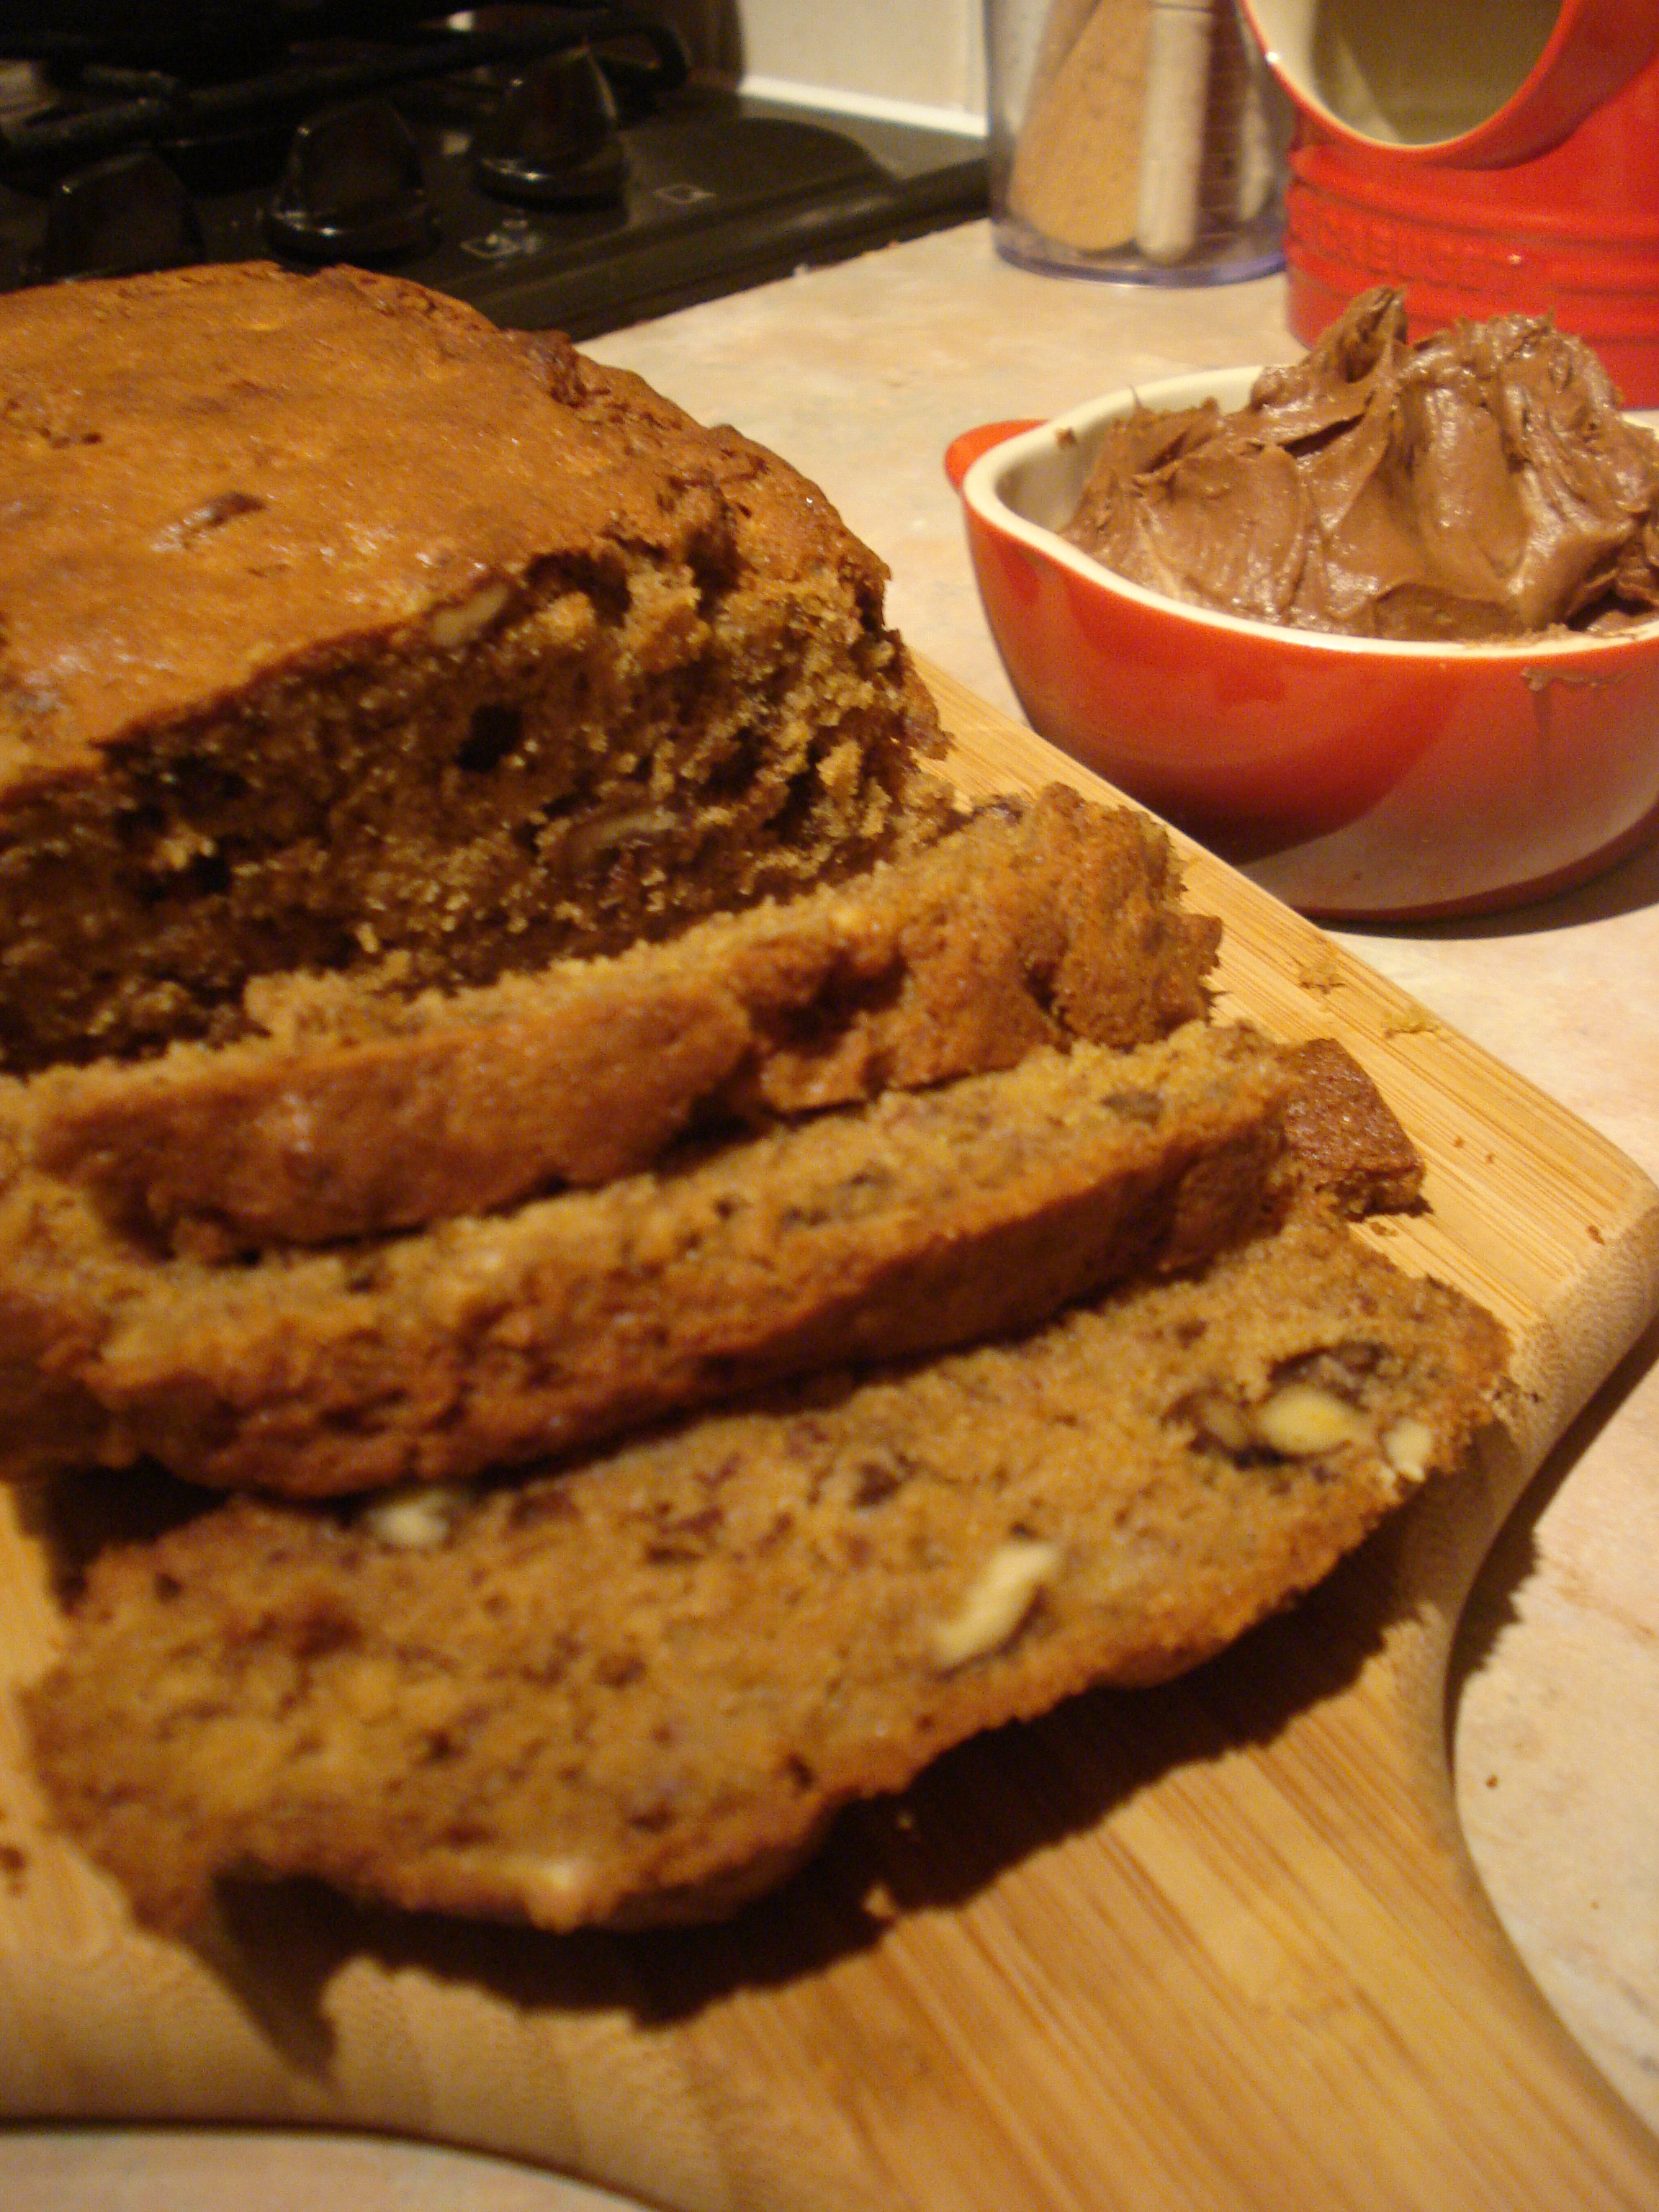 walnut and banana loaf with chocolate orange butter